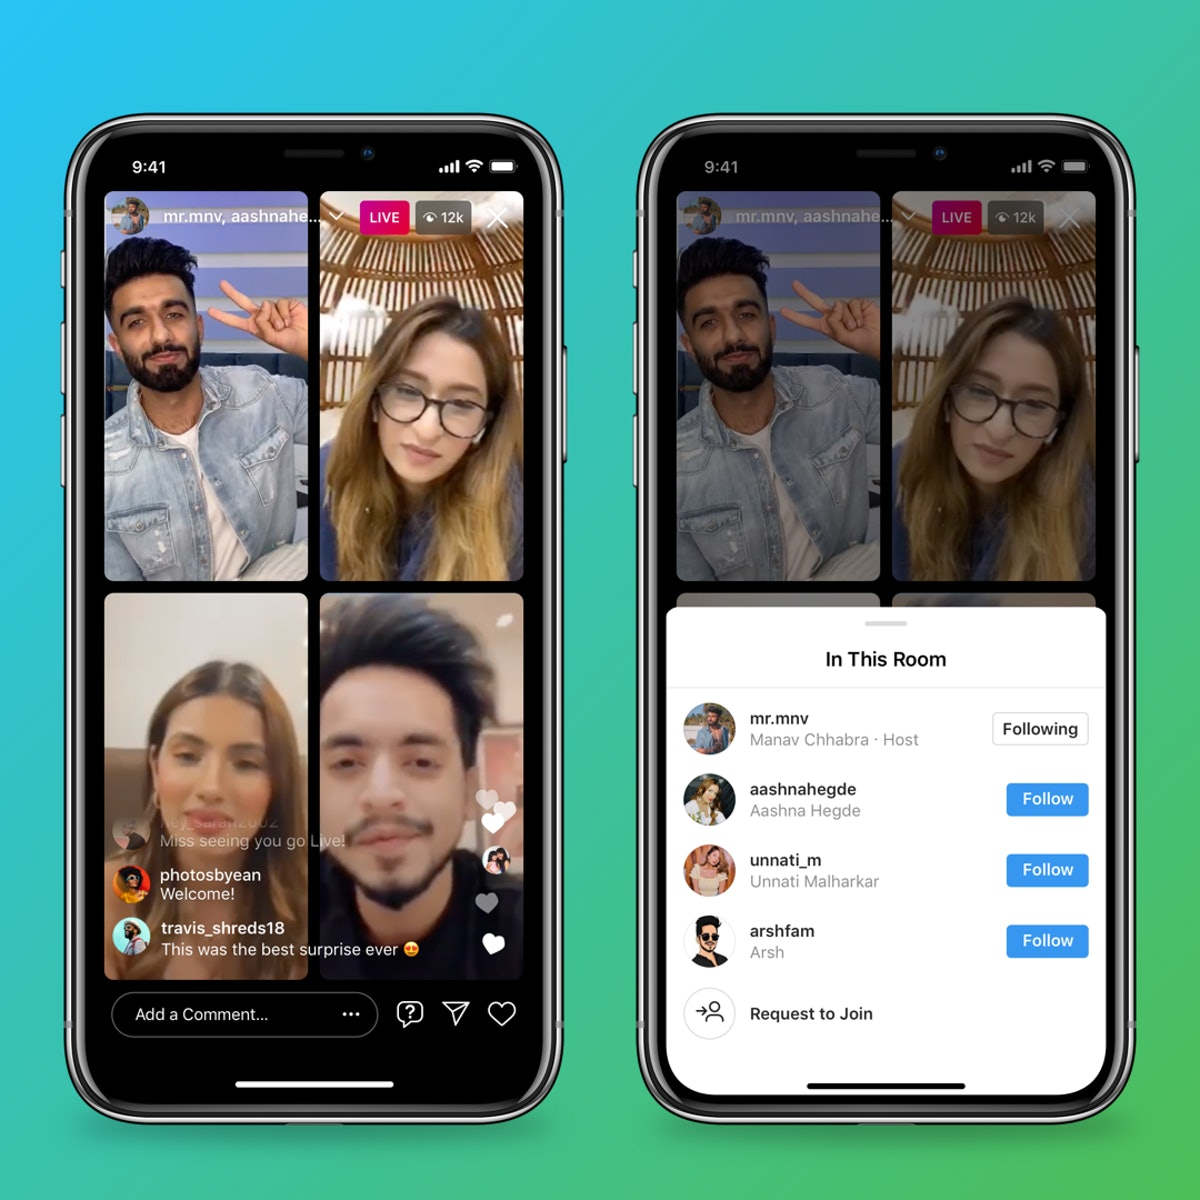 Here's how to use Instagram Live Rooms to stream with up to three other people.